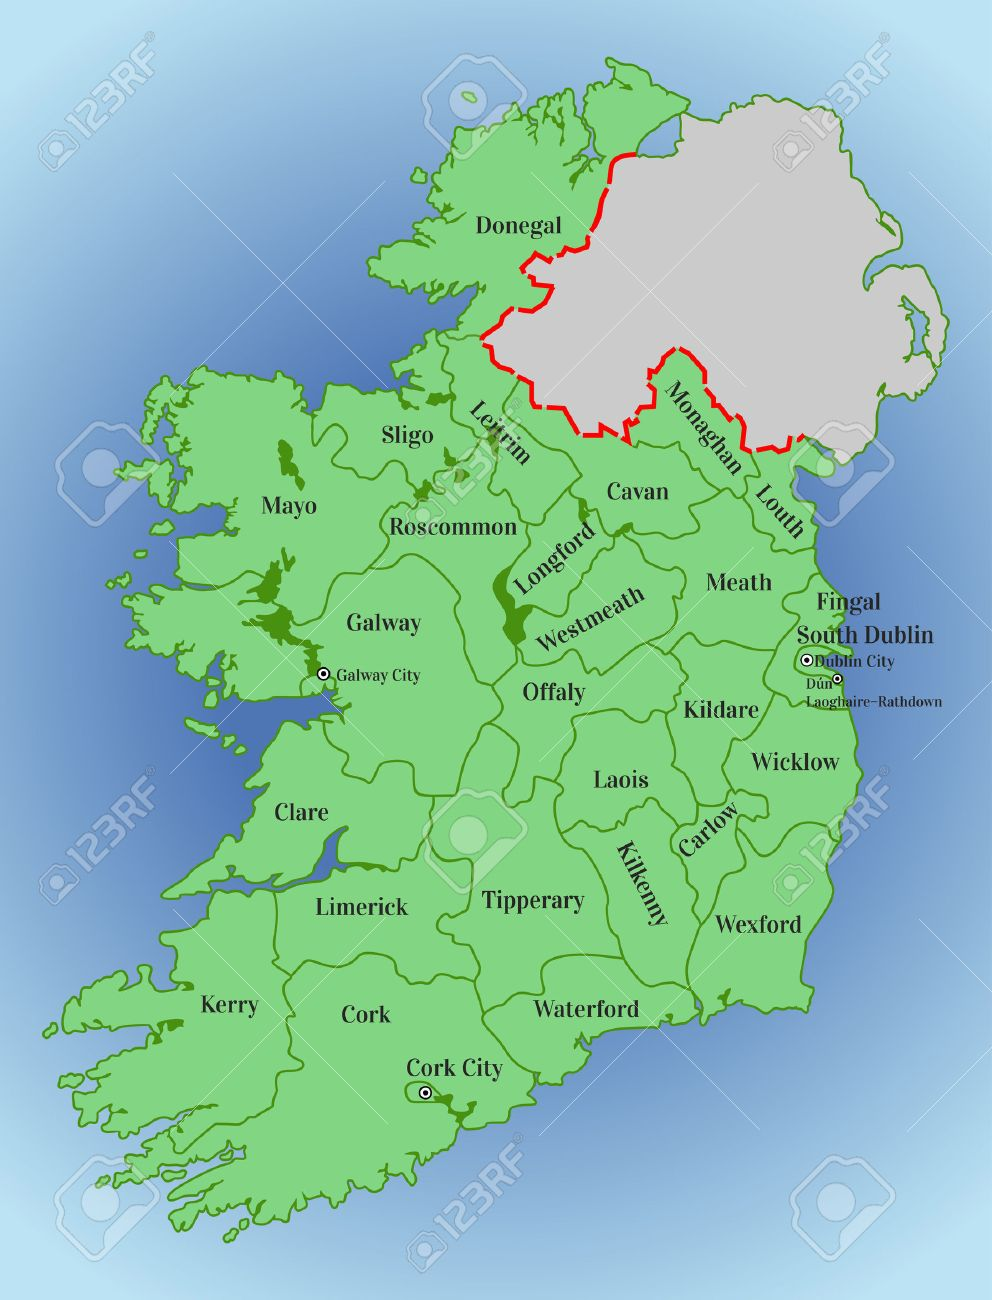 Map Of Ireland By County.Vector Map Of Ireland Republic Of Ireland Map Of Ireland With